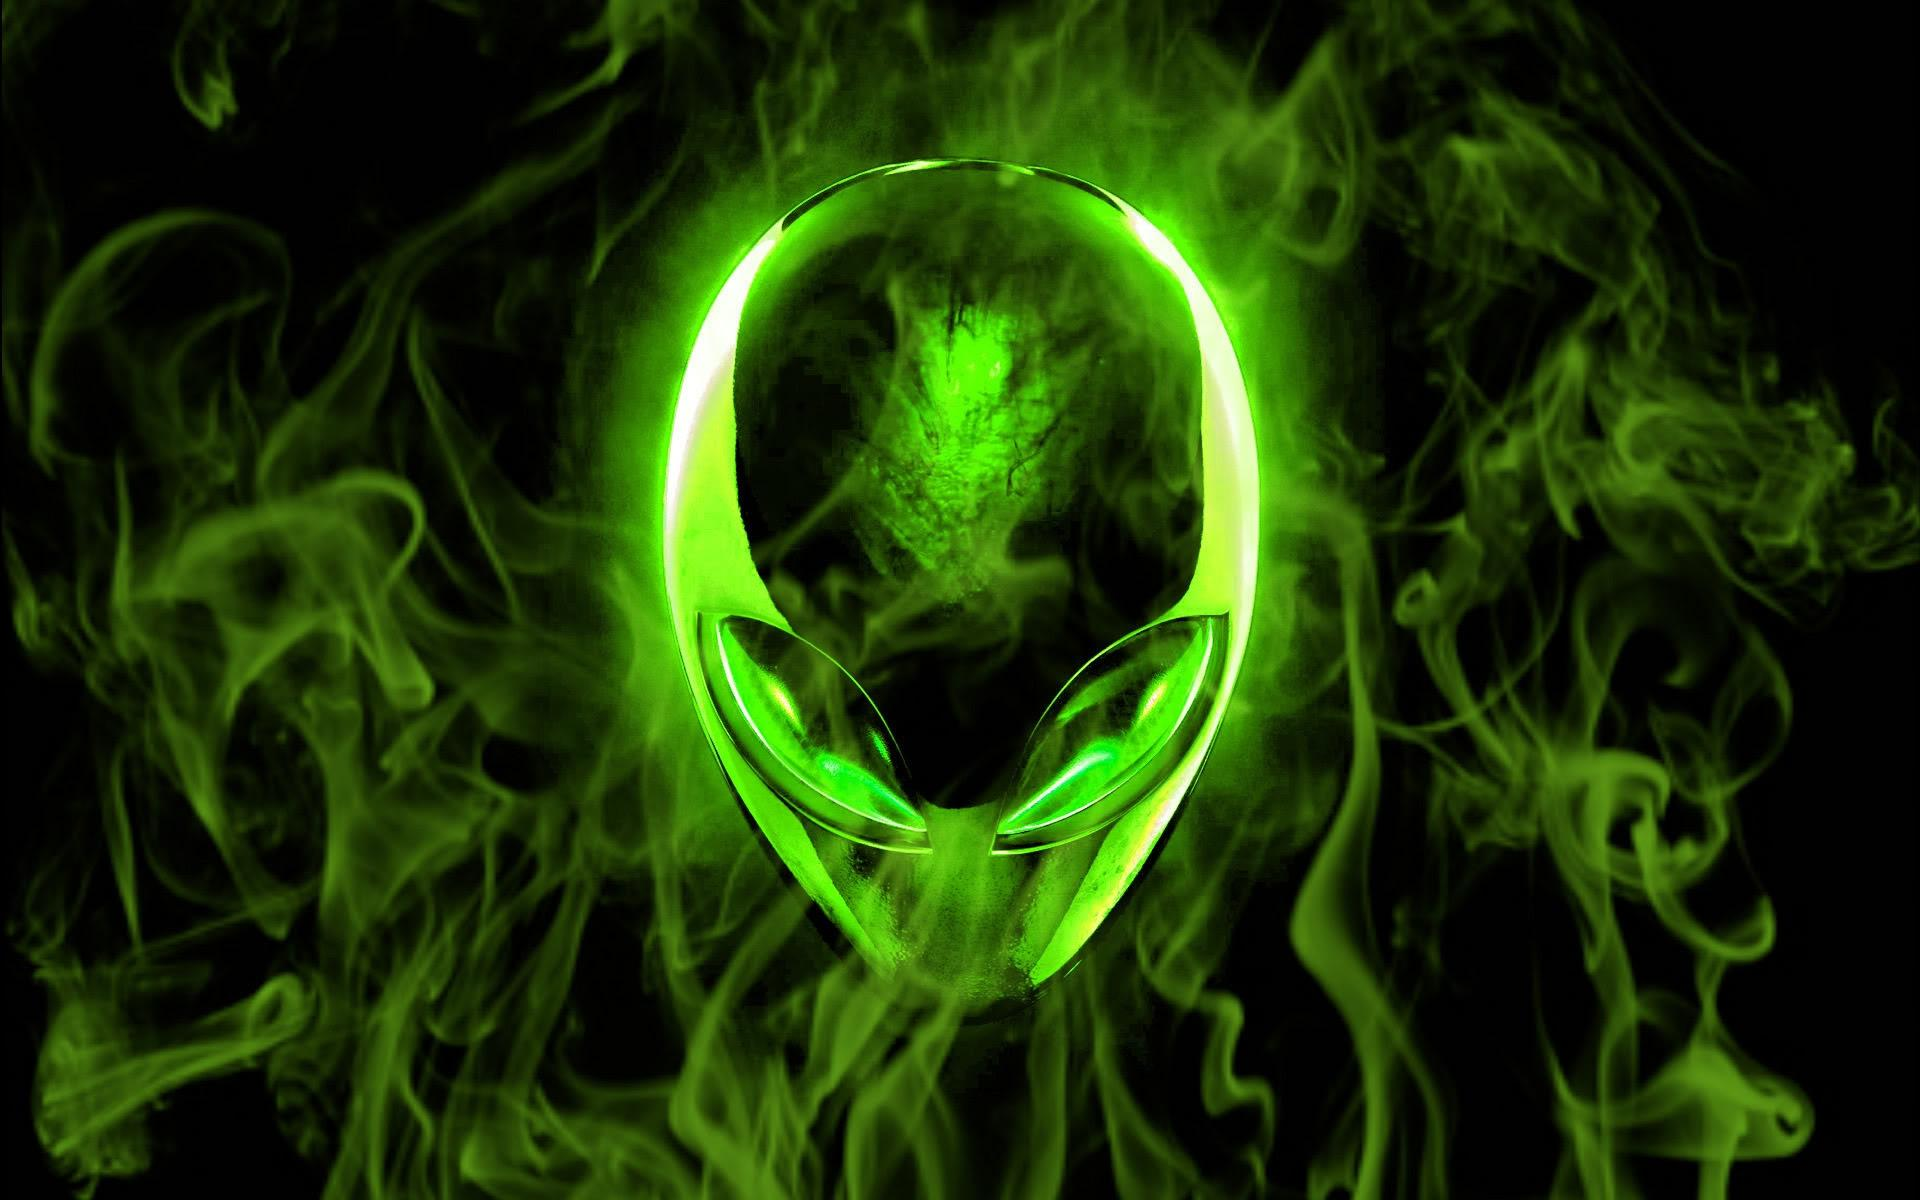 Green Alien and Smoke Computer Wallpapers, Desktop Backgrounds